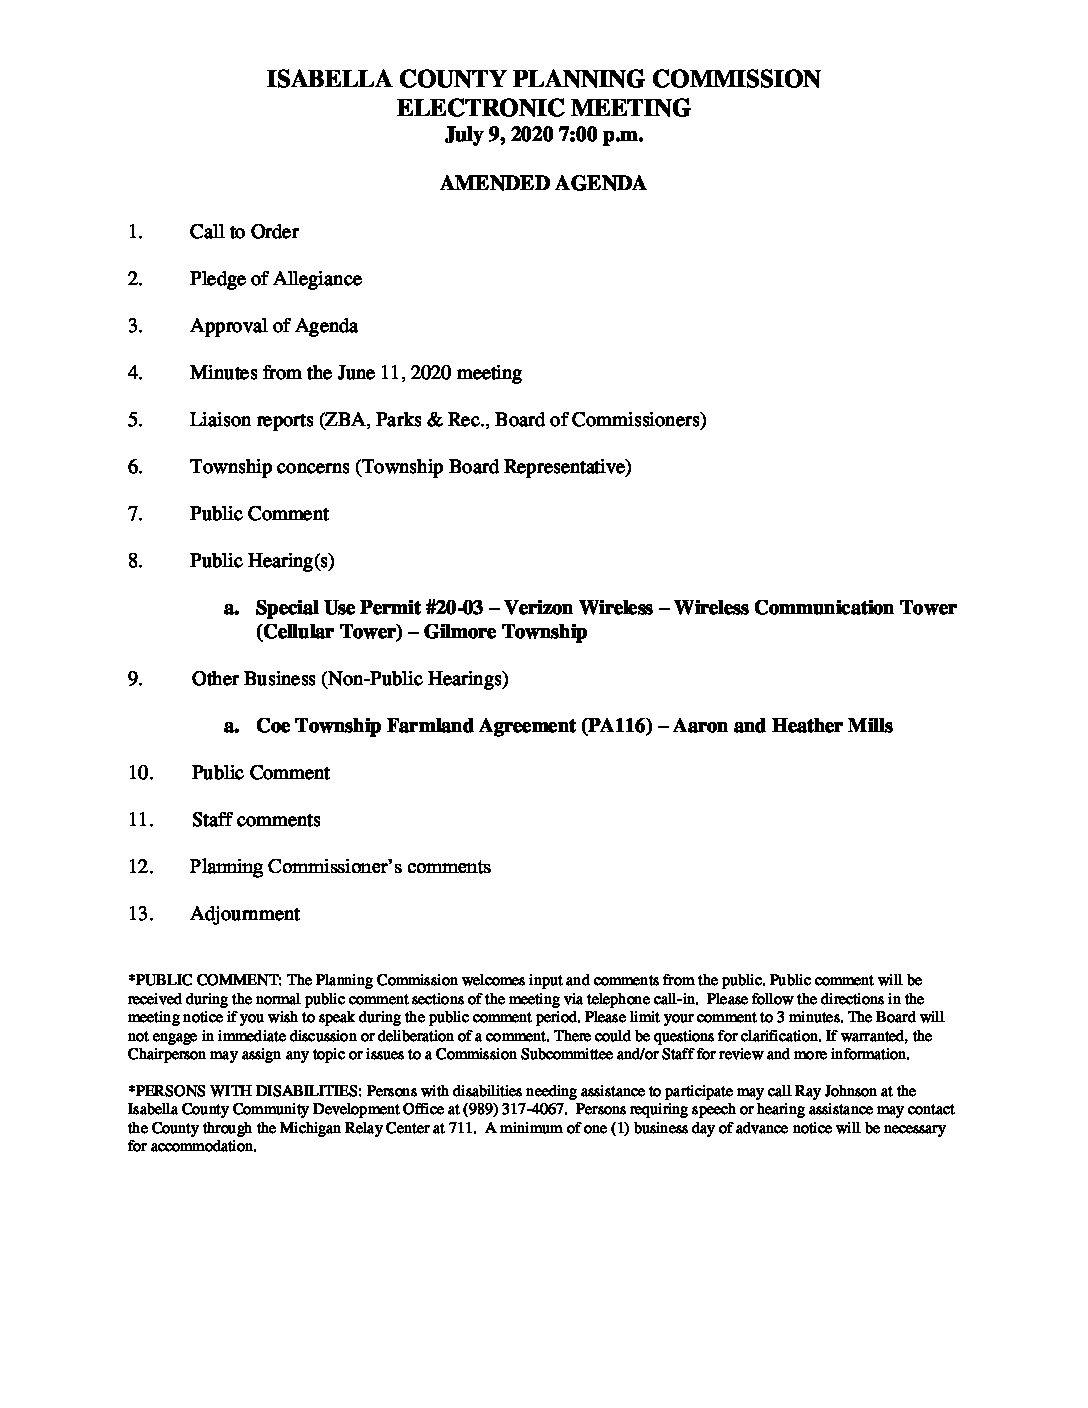 preview image of first page July 9, 2020 Amended Agenda